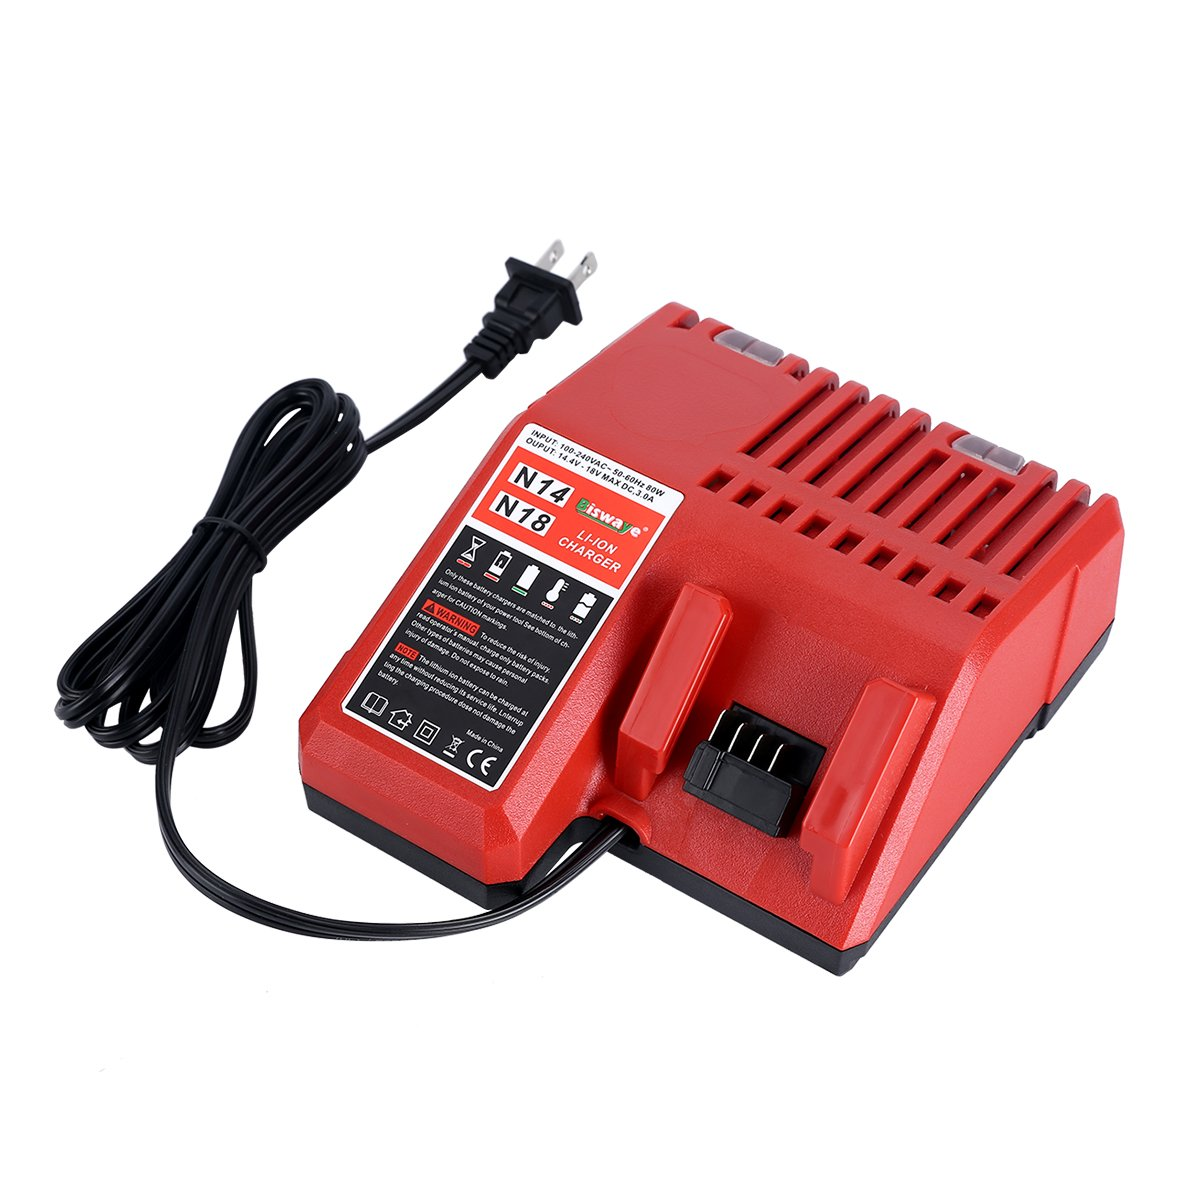 Replacement Lithium Ion Battery Charger Multi Voltage For Baterai Cordless Dewalt 18v 40 Ah Asli Milwaukee M18 144v 48 11 1850 1840 1815 1828